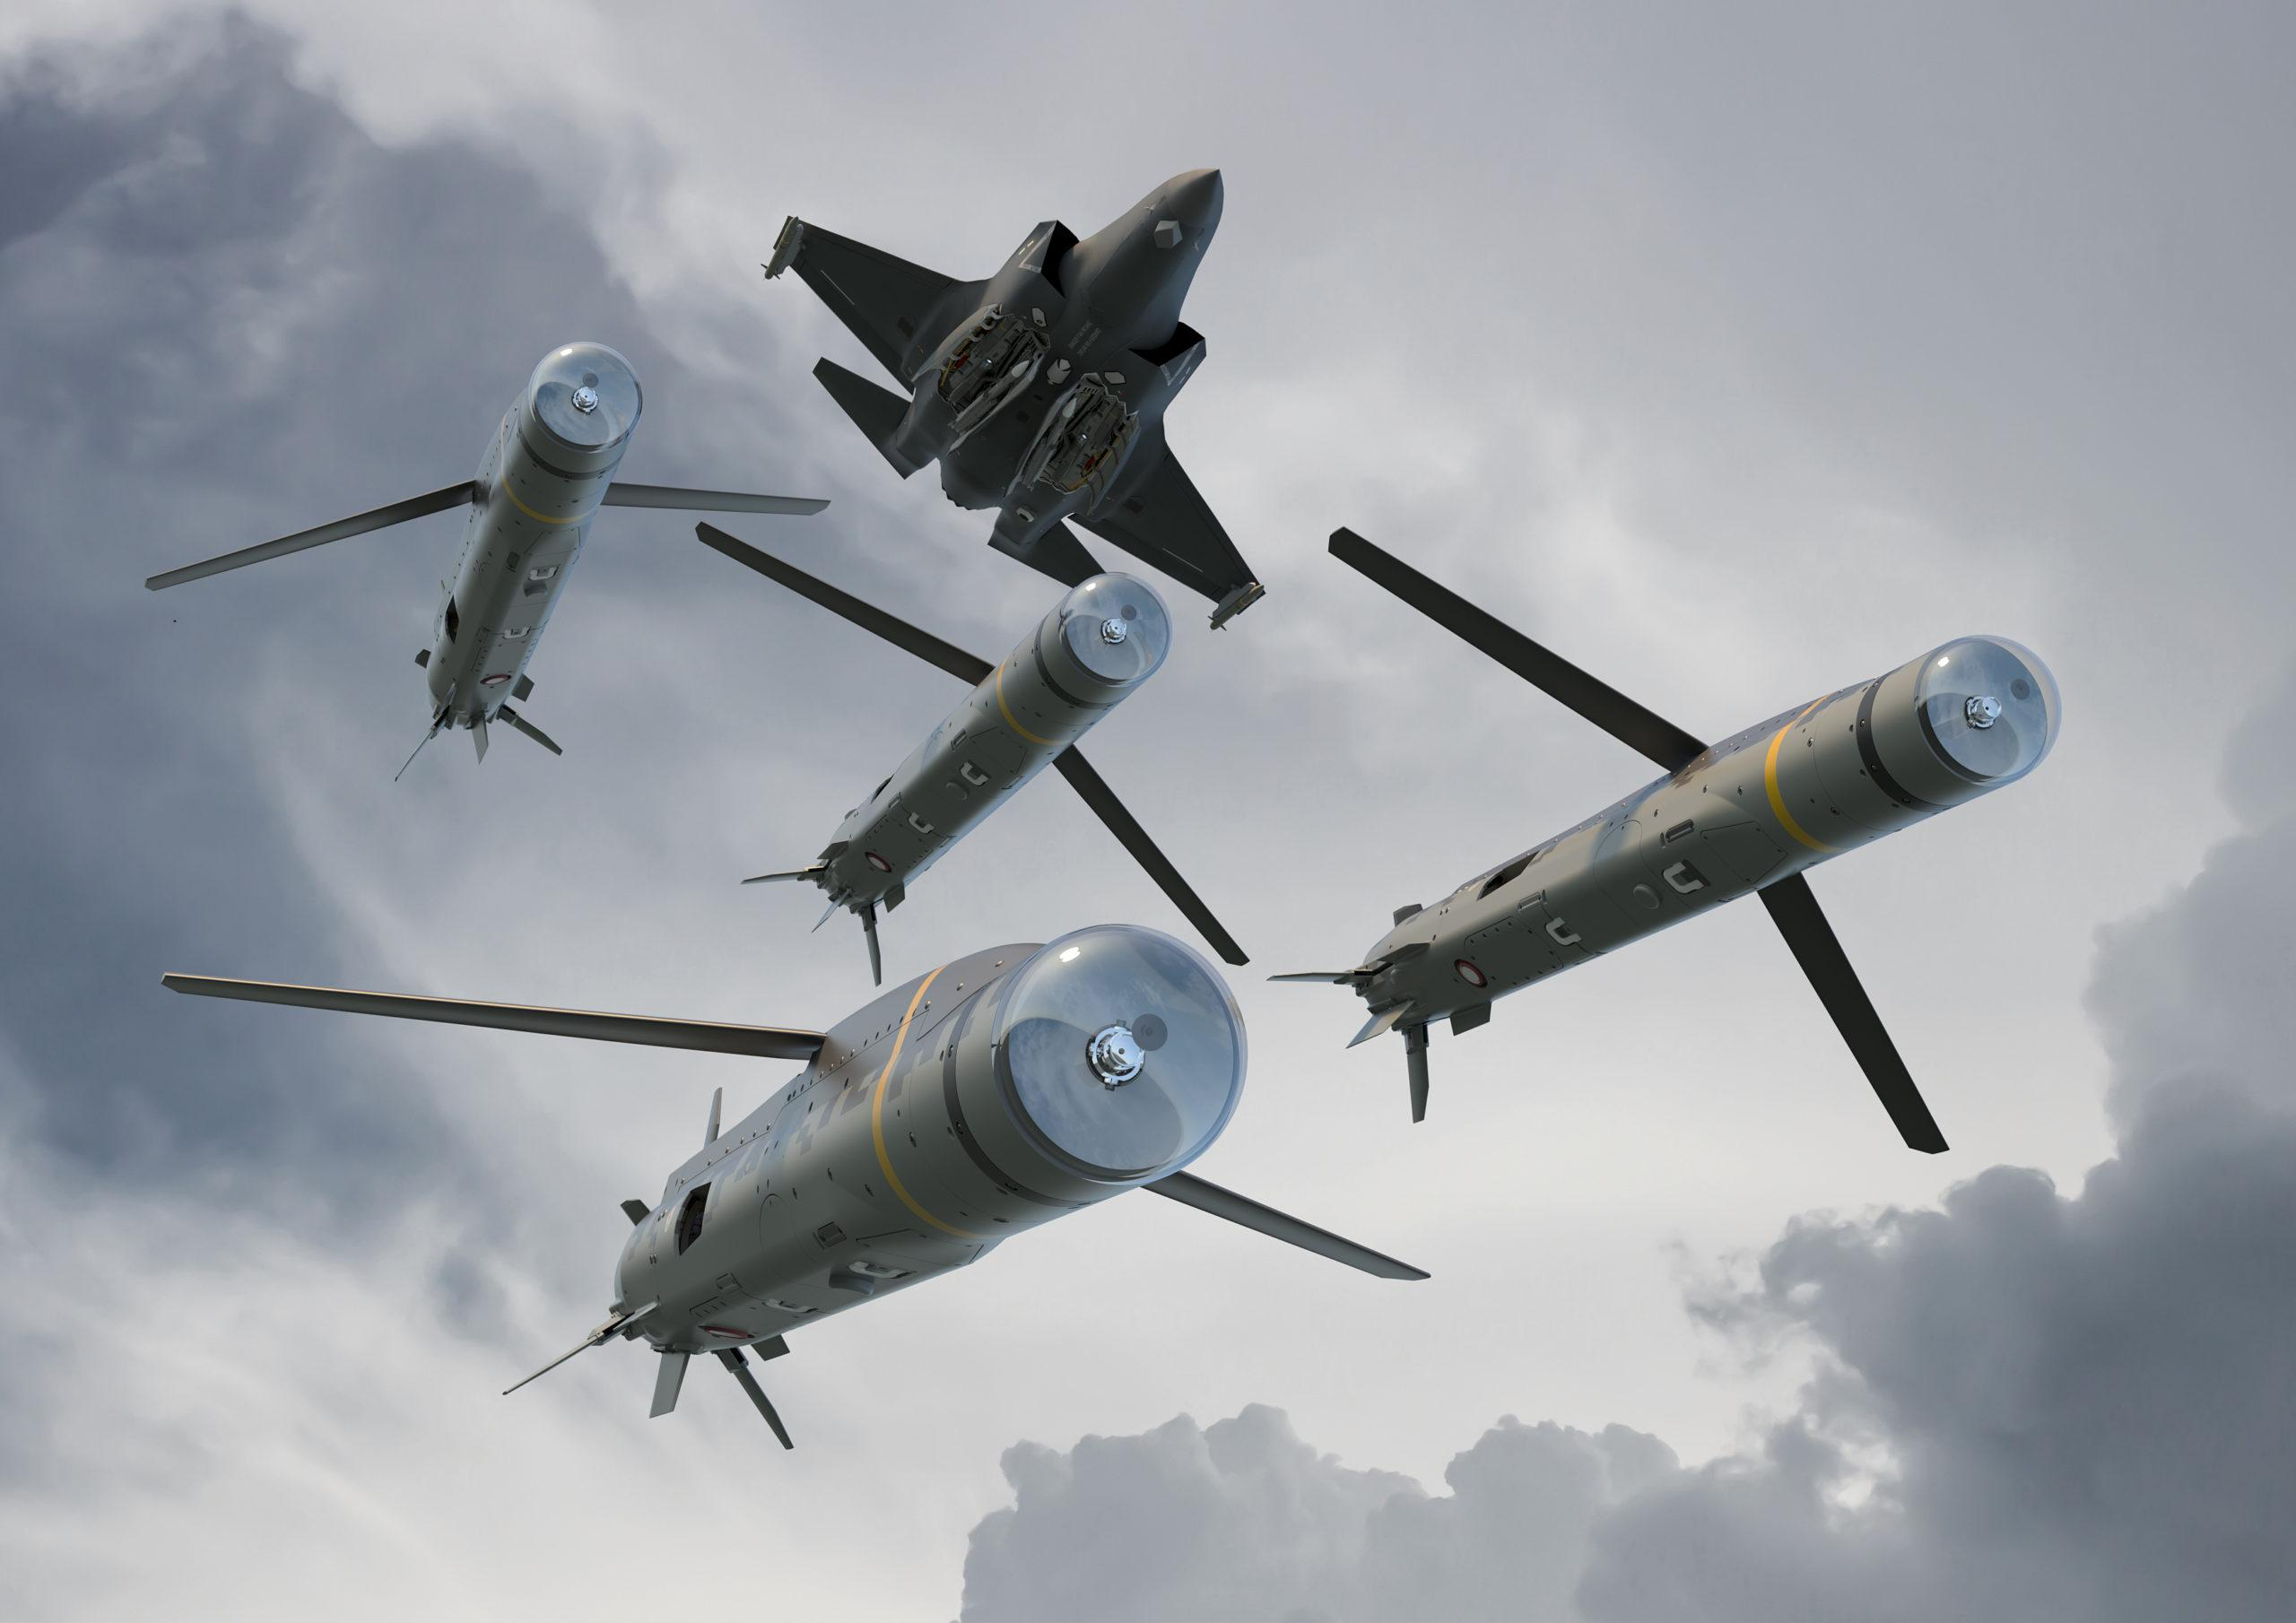 MBDAs SPEAR missile secures UK development contract - MBDA